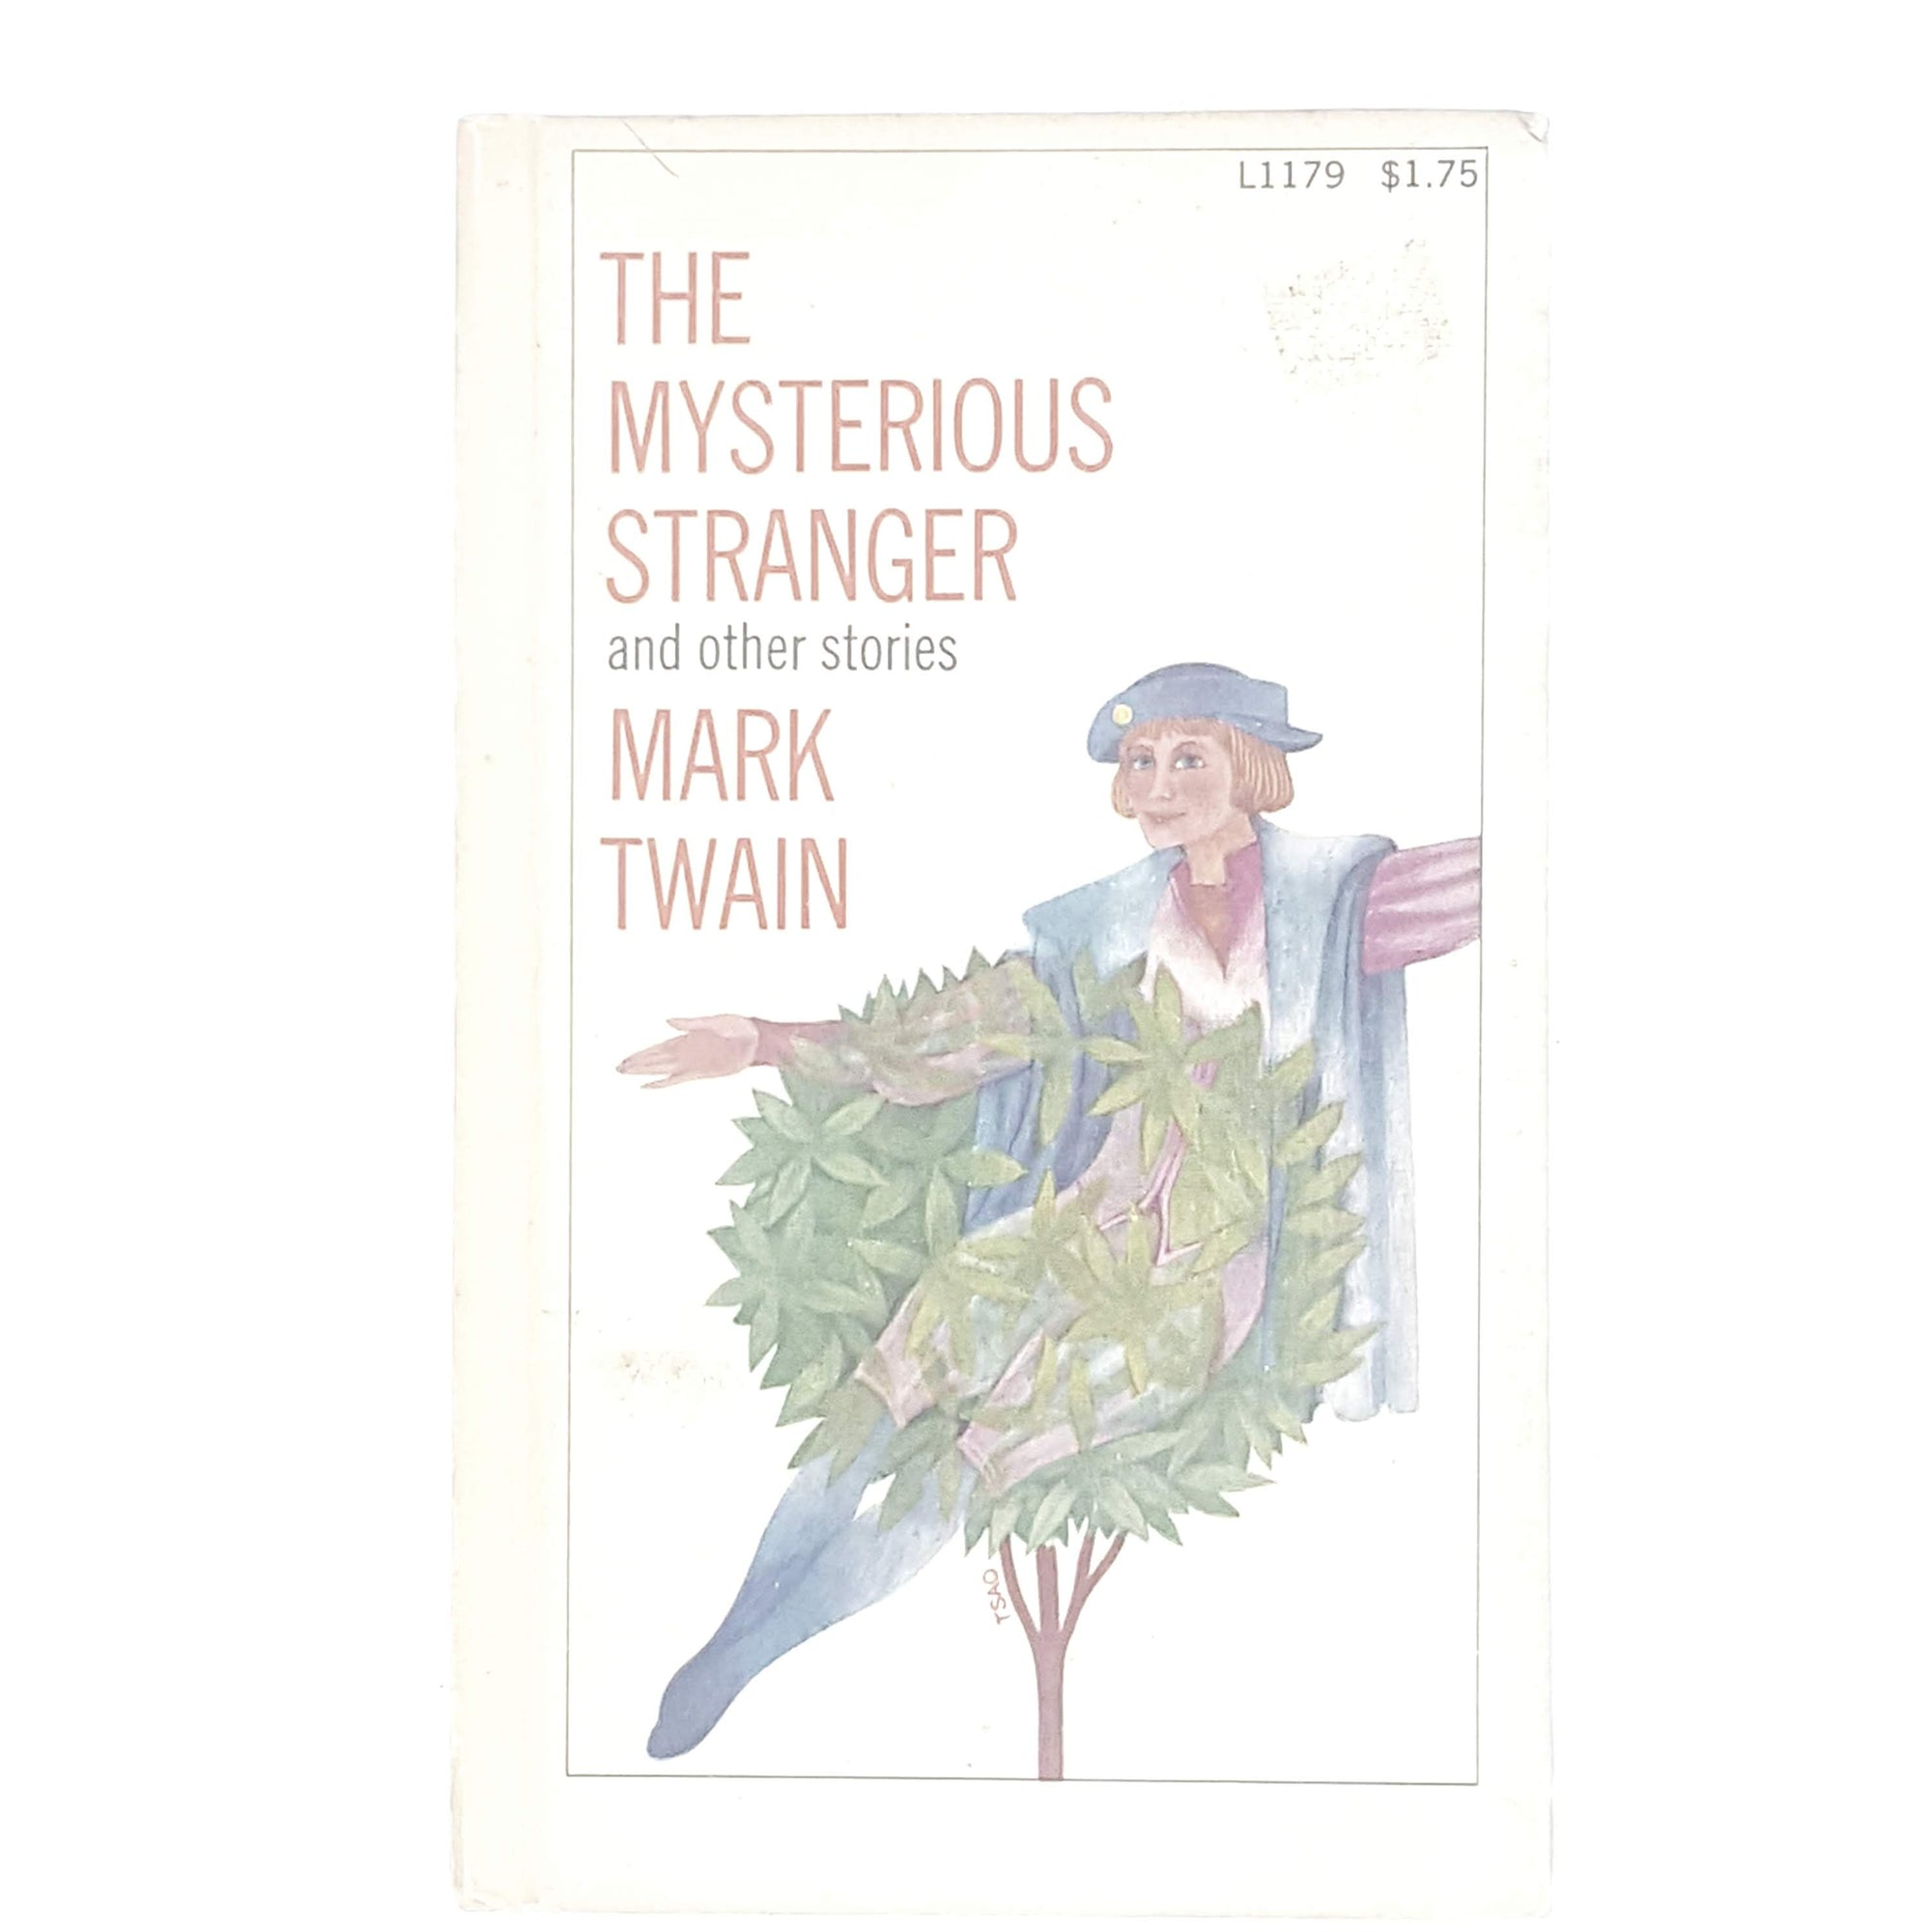 Mark Twain's The Mysterious Stranger 1976